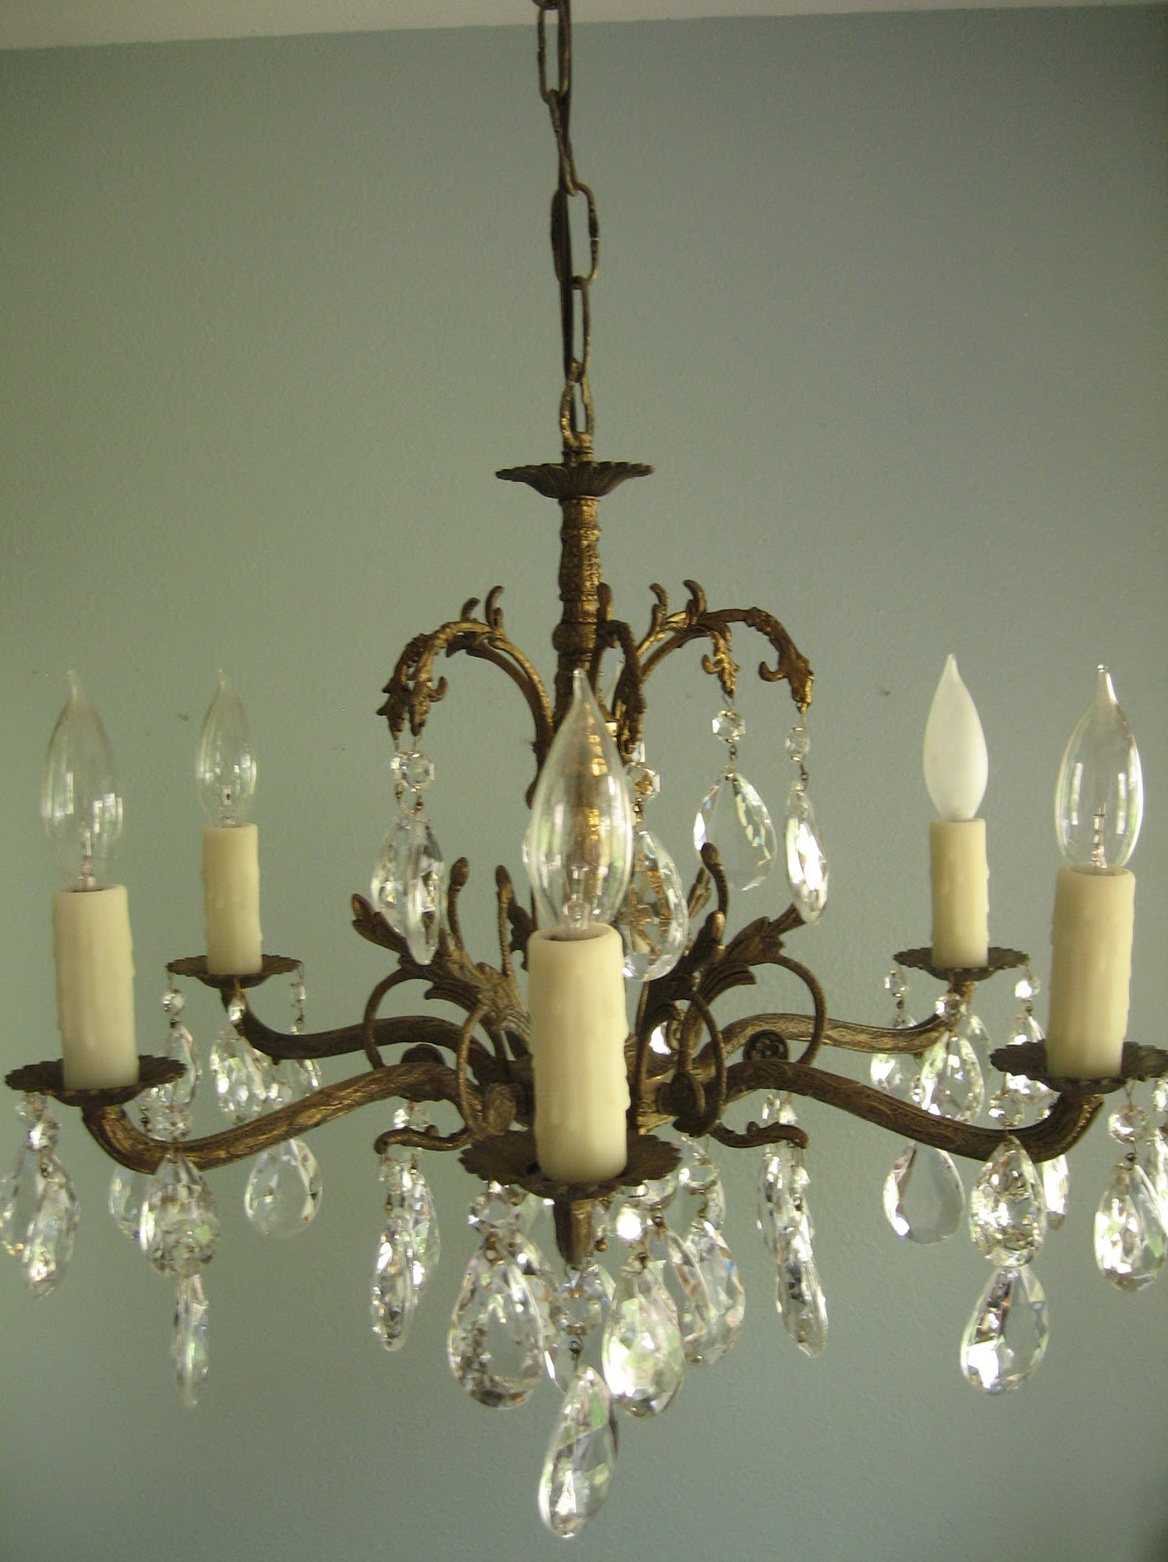 Installing A Chandelier In An Apartment Home Design Ideas